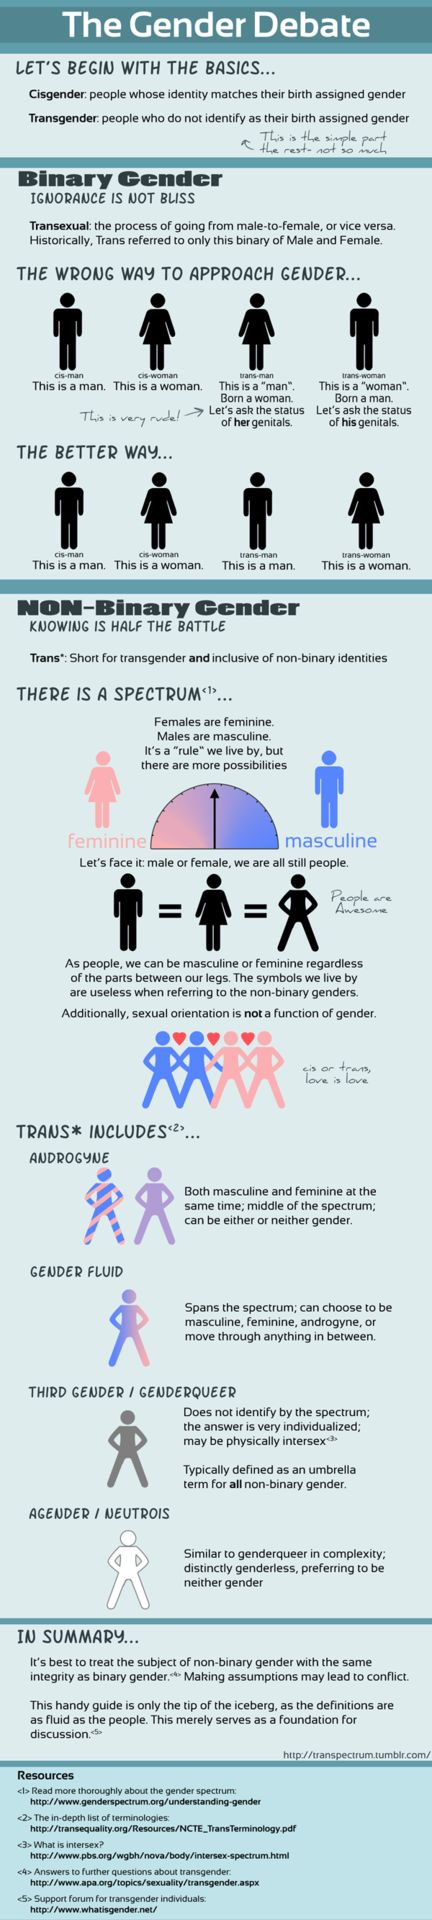 The Gender Debate #infographic